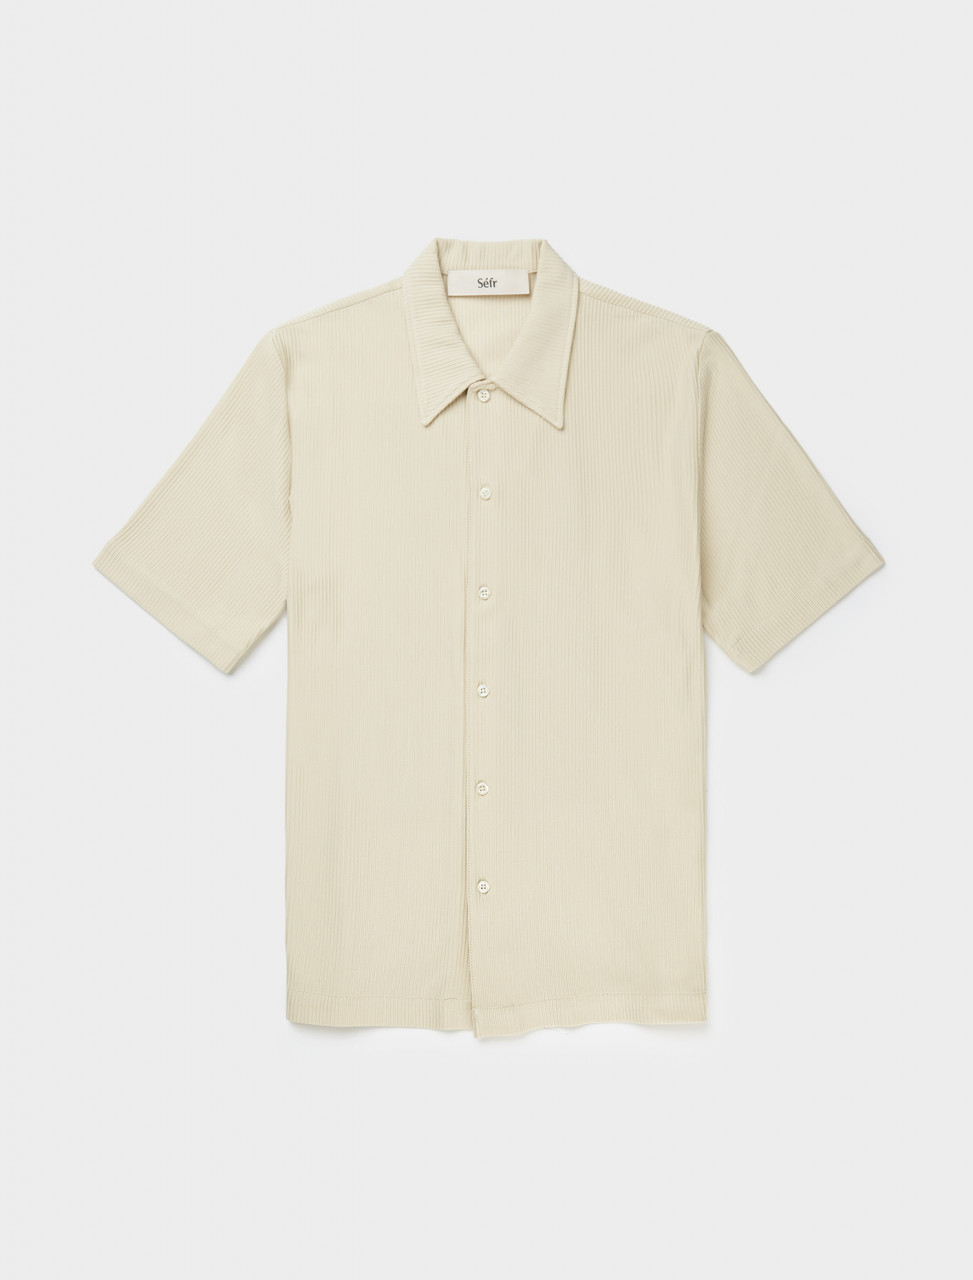 Front view of Séfr Suneham Shirt in Off White Stripe